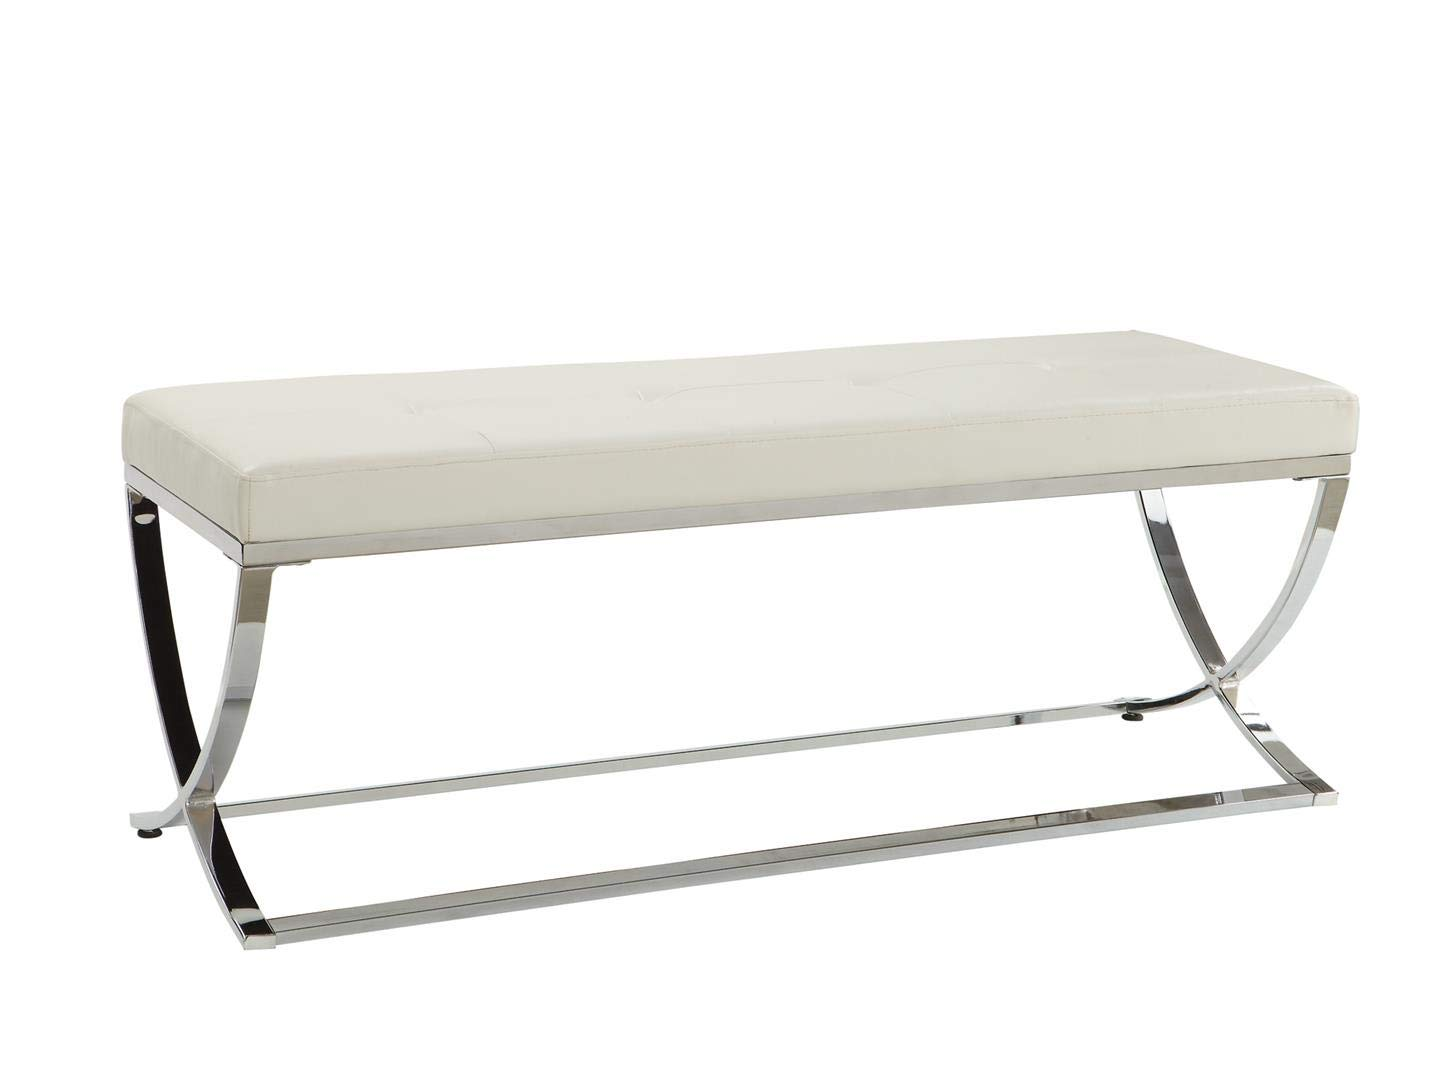 Man-Made Leather Bench with Metal Base White and Chrome by Coaster Home Furnishings